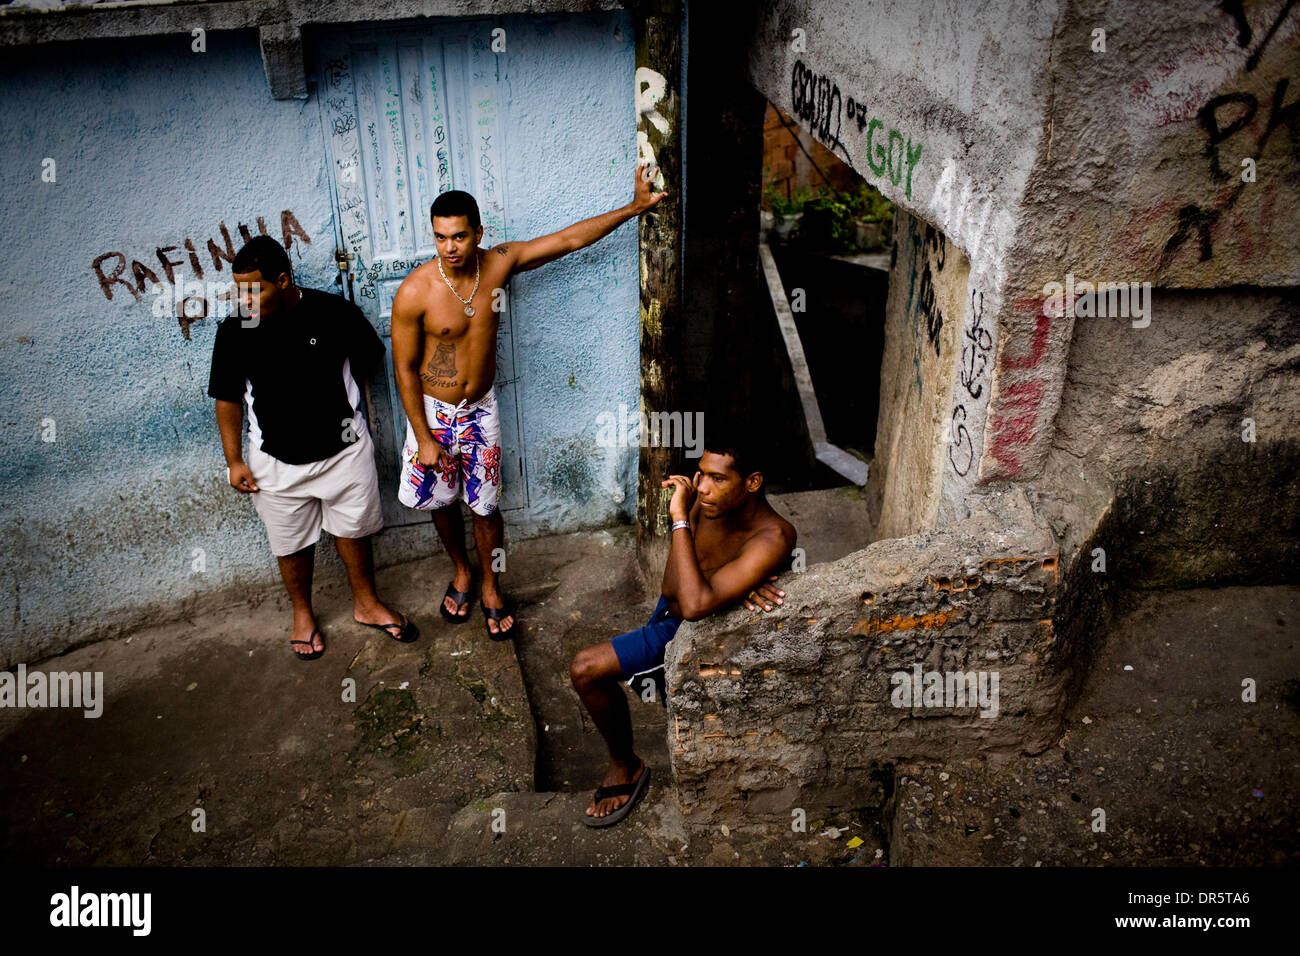 Mar 30, 2009 - Rio de Janeiro, Brazil - Young men are at the most risk in the slum to be involved with the drug gang that runs Rocinha in Rio de Janeiro, Brazil.  The main gang in the slum is ADA or Amigos dos Amigos, which is one of the largest criminal organizations in the city. (Credit Image: © Matthew Williams/ZUMApress.com) - Stock Image